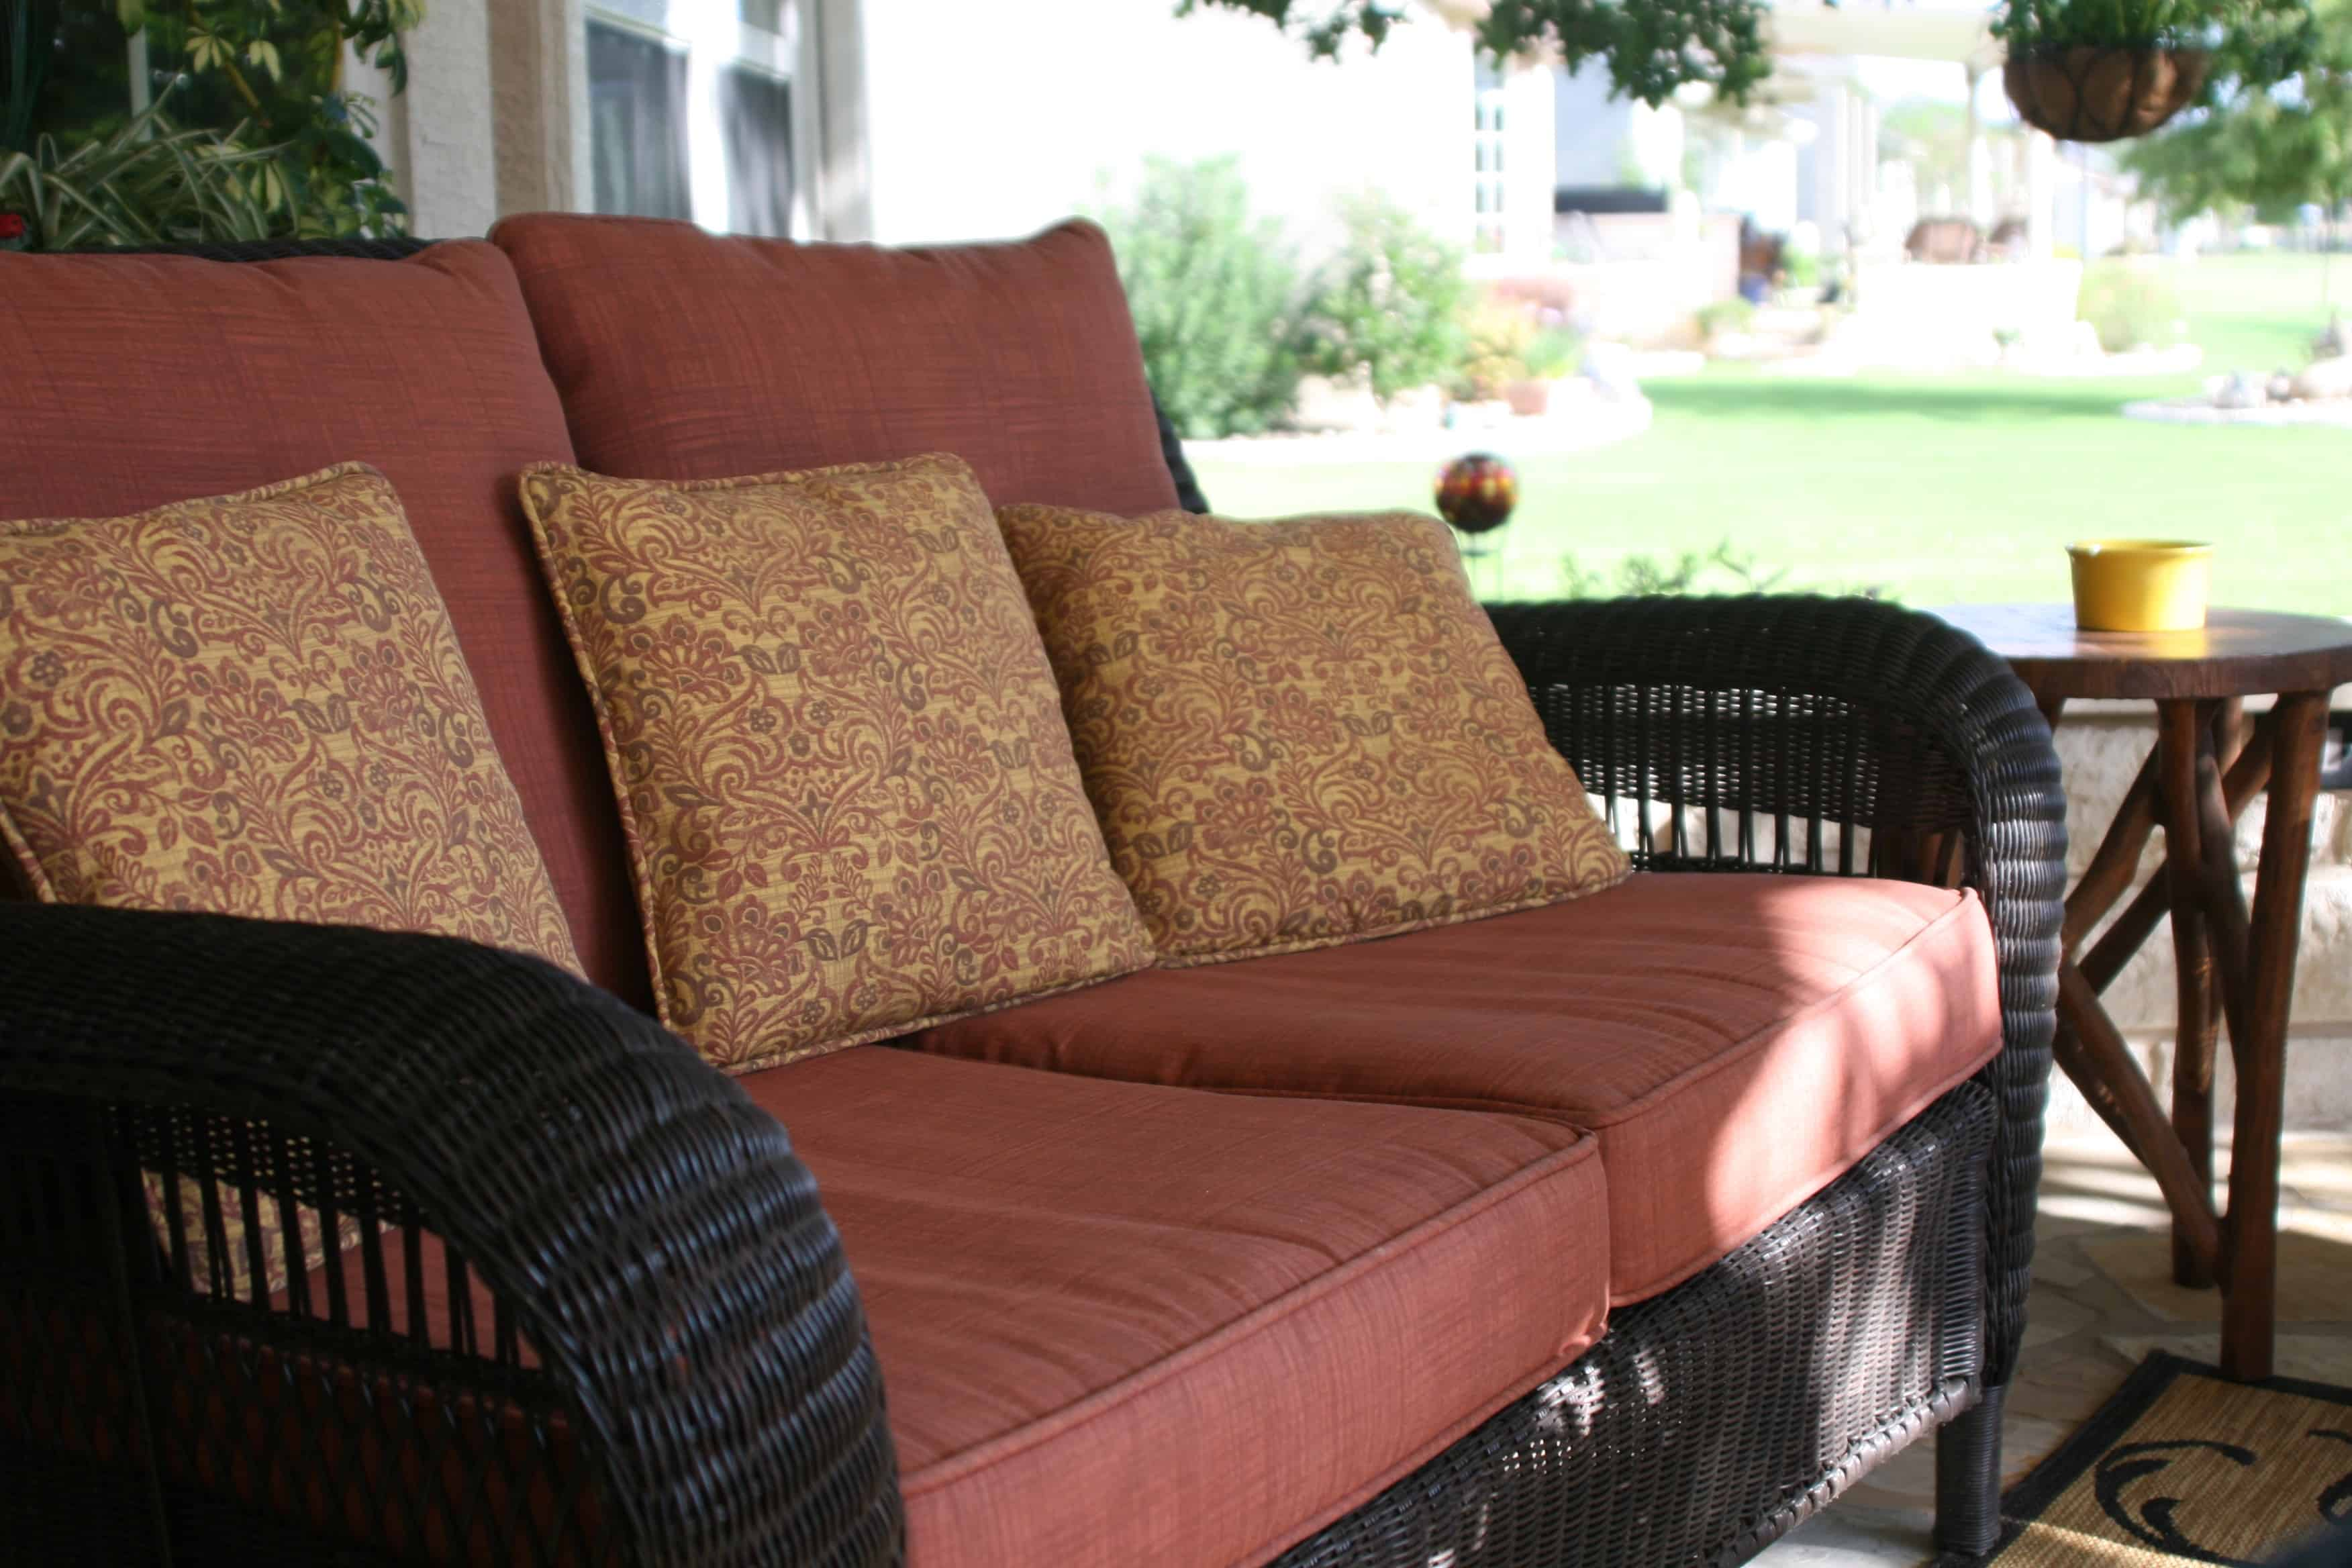 Outdoor Wicker Furniture: Affordable and Long Lasting – Finally